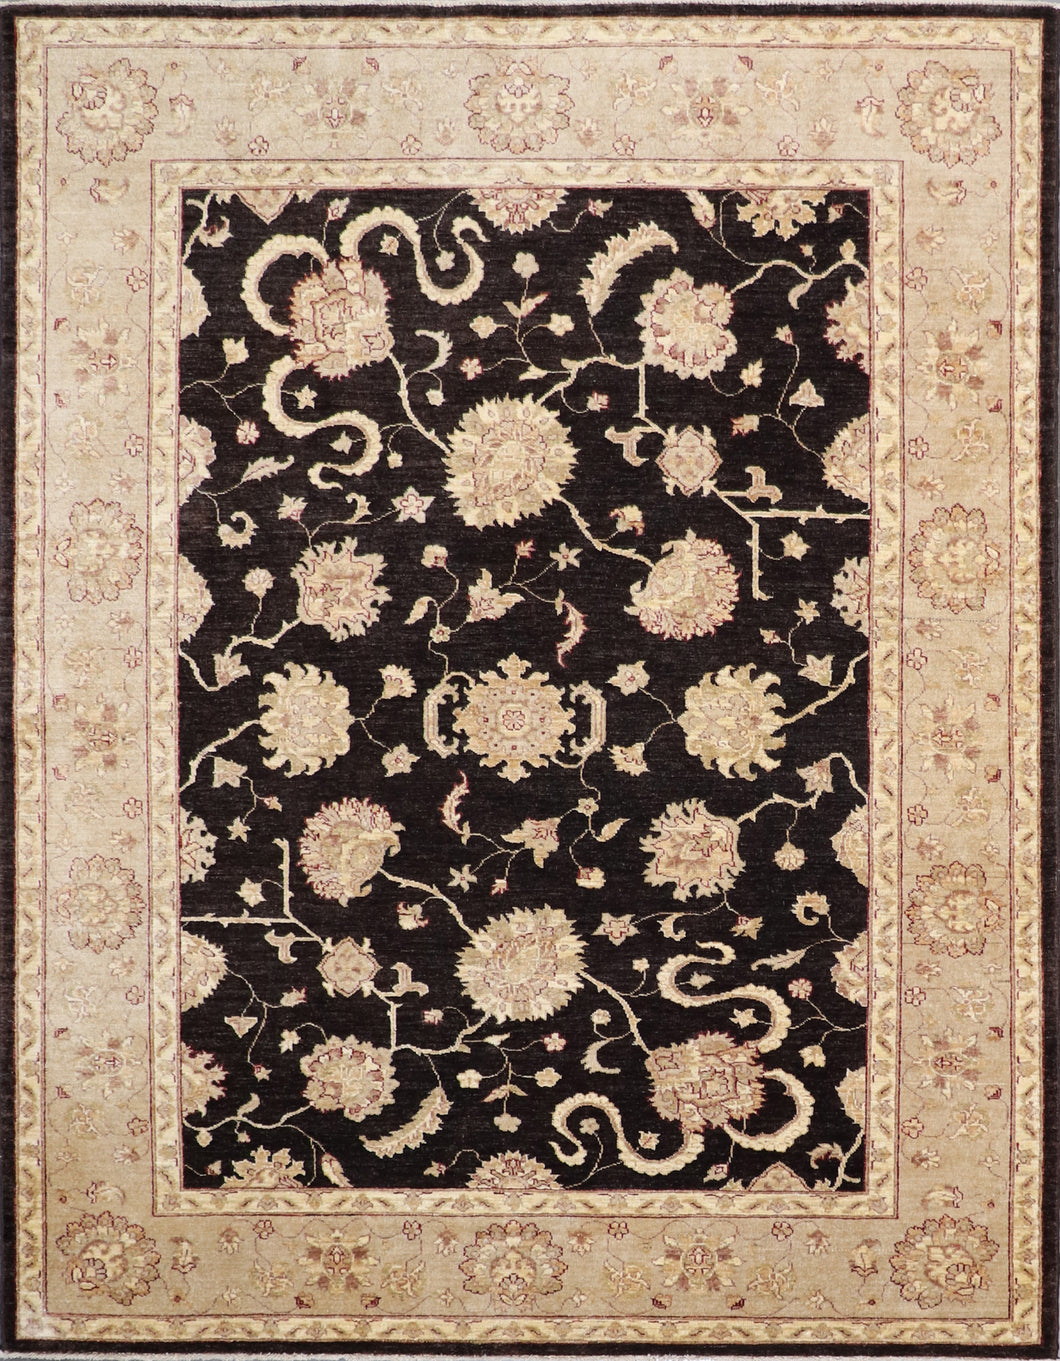 6'x8' Traditional Black Kashan Wool Hand-Knotted Rug - Direct Rug Import | Rugs in Chicago, Indiana,South Bend,Granger